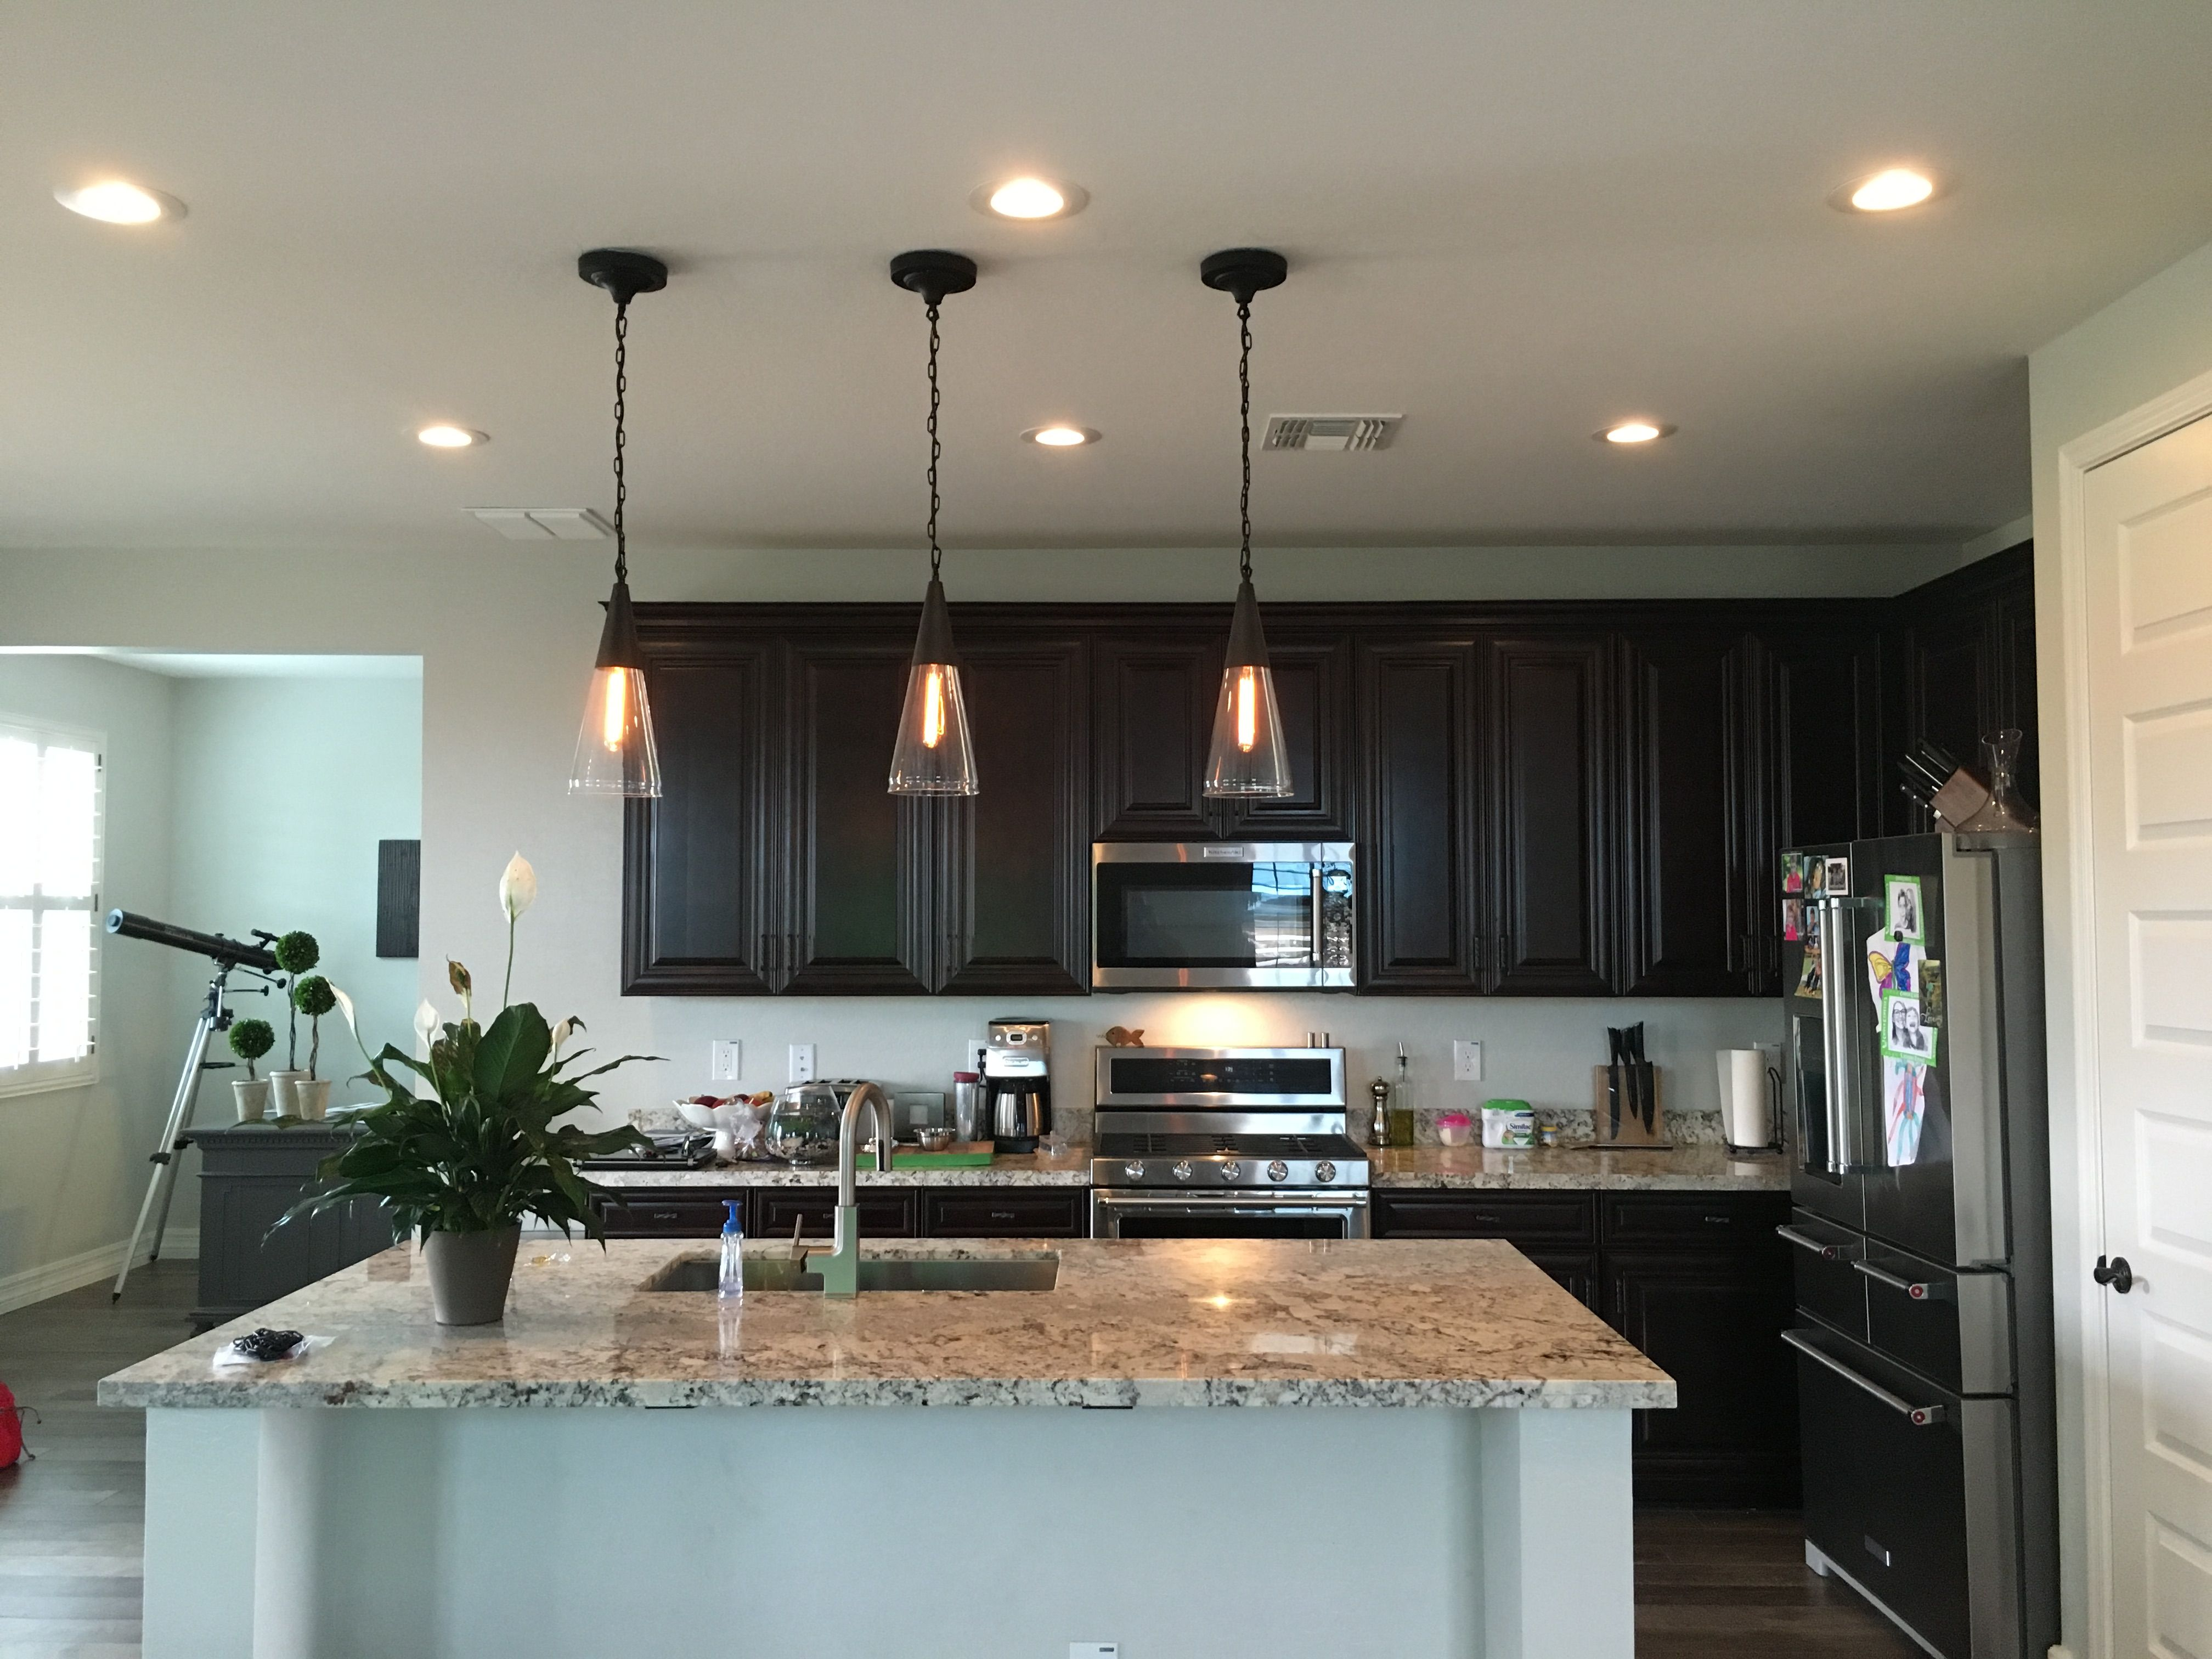 Az Recessed Lighting Installation Of Led Lights And Island